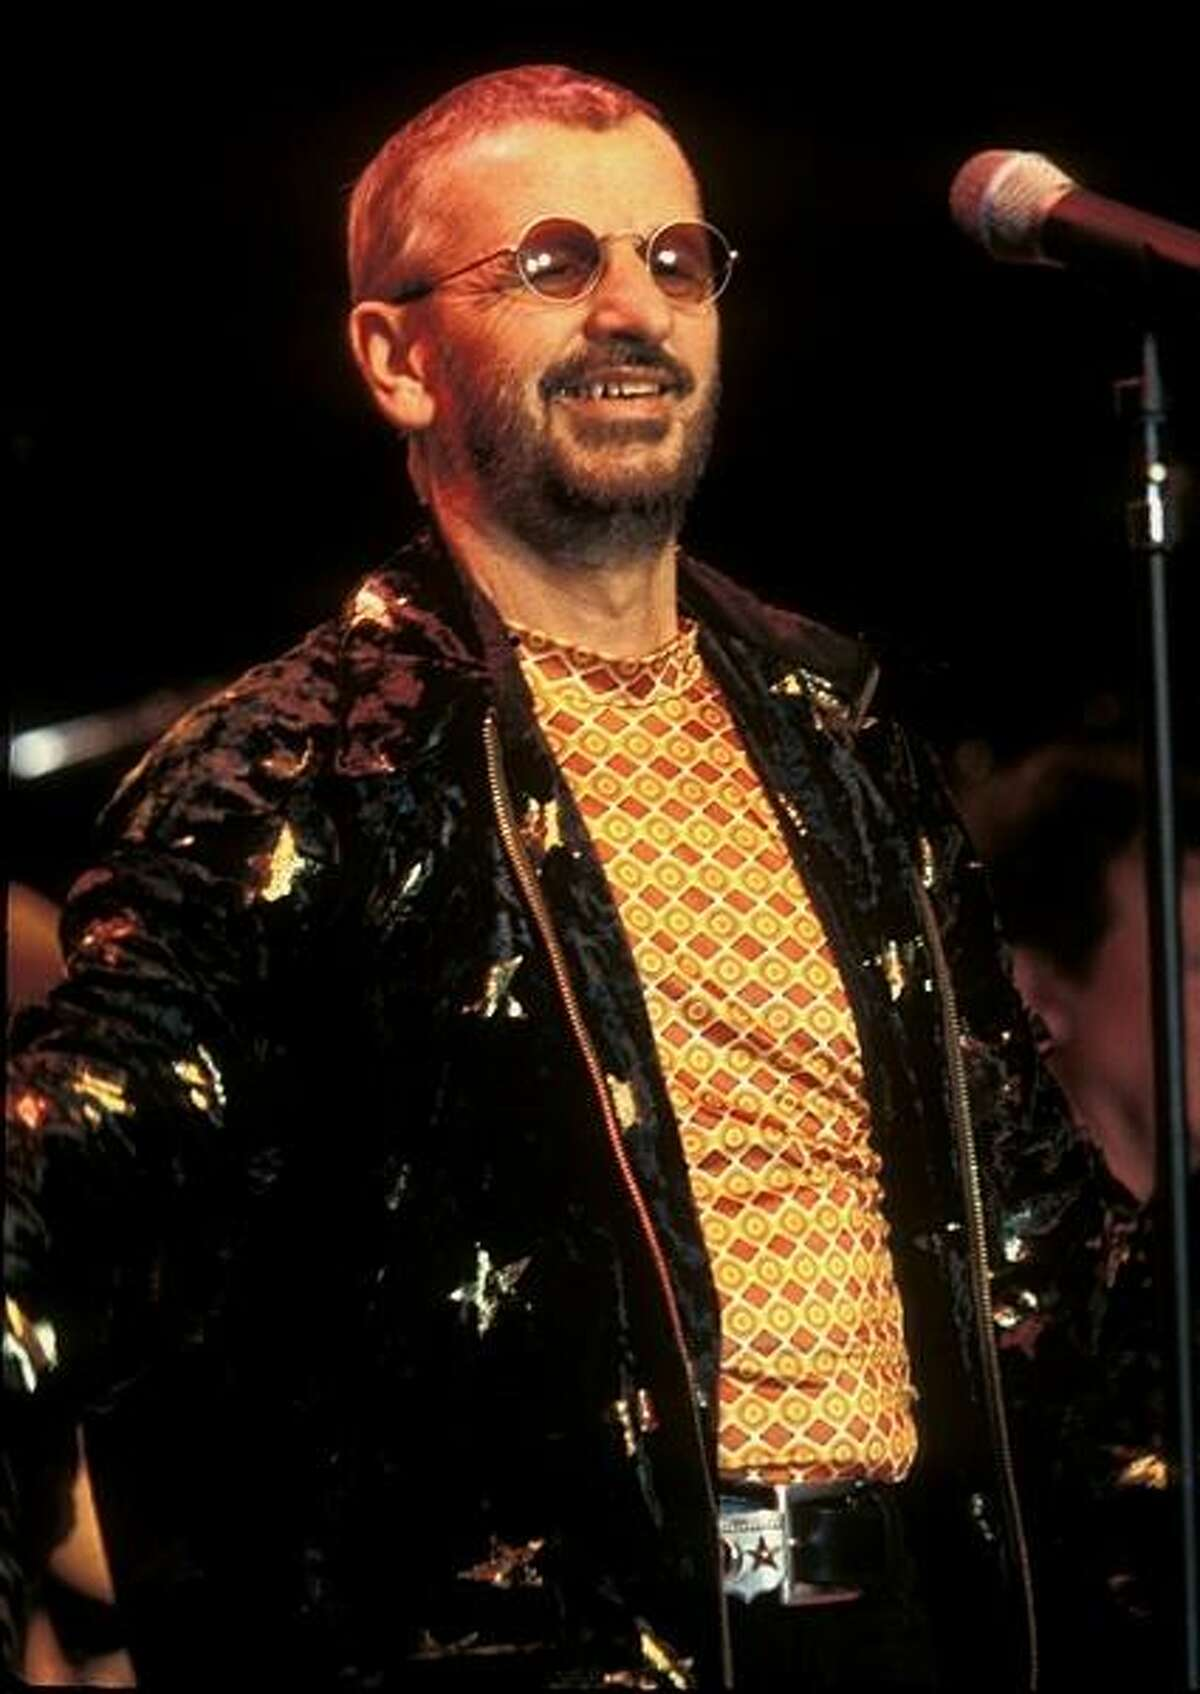 Former Beatle drummer Ringo Starr is shown performing on stage during a